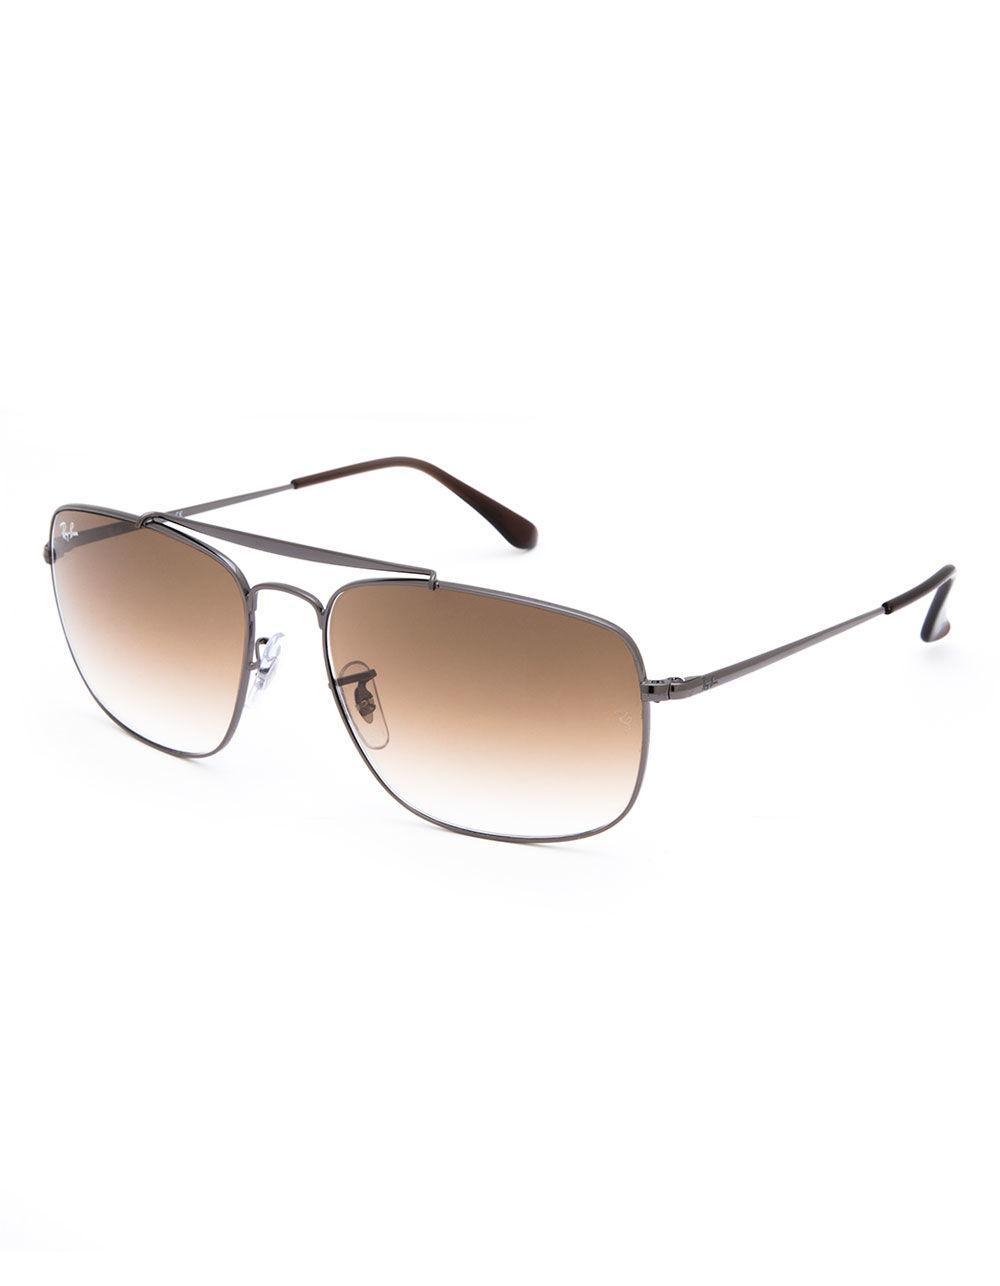 bfb857492ba Lyst - Ray-Ban Colonel Gunmetal   Light Brown Gradient Sunglasses in ...